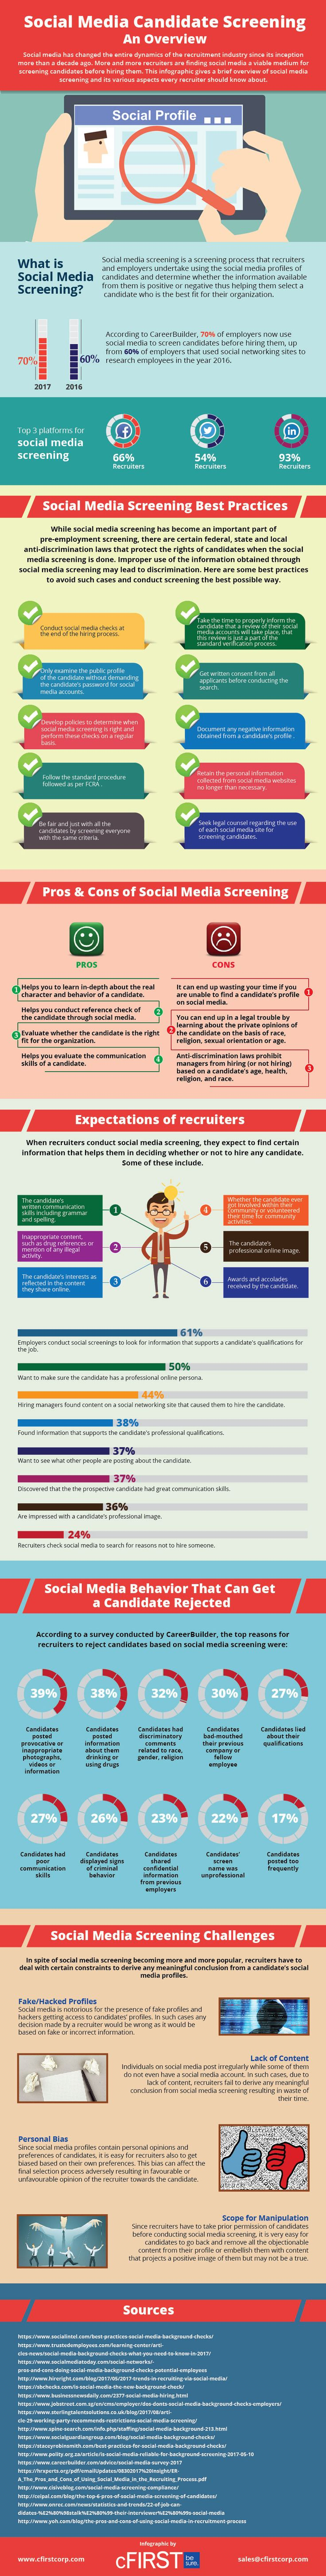 #Social_Media #Candidate Screening: An Overview